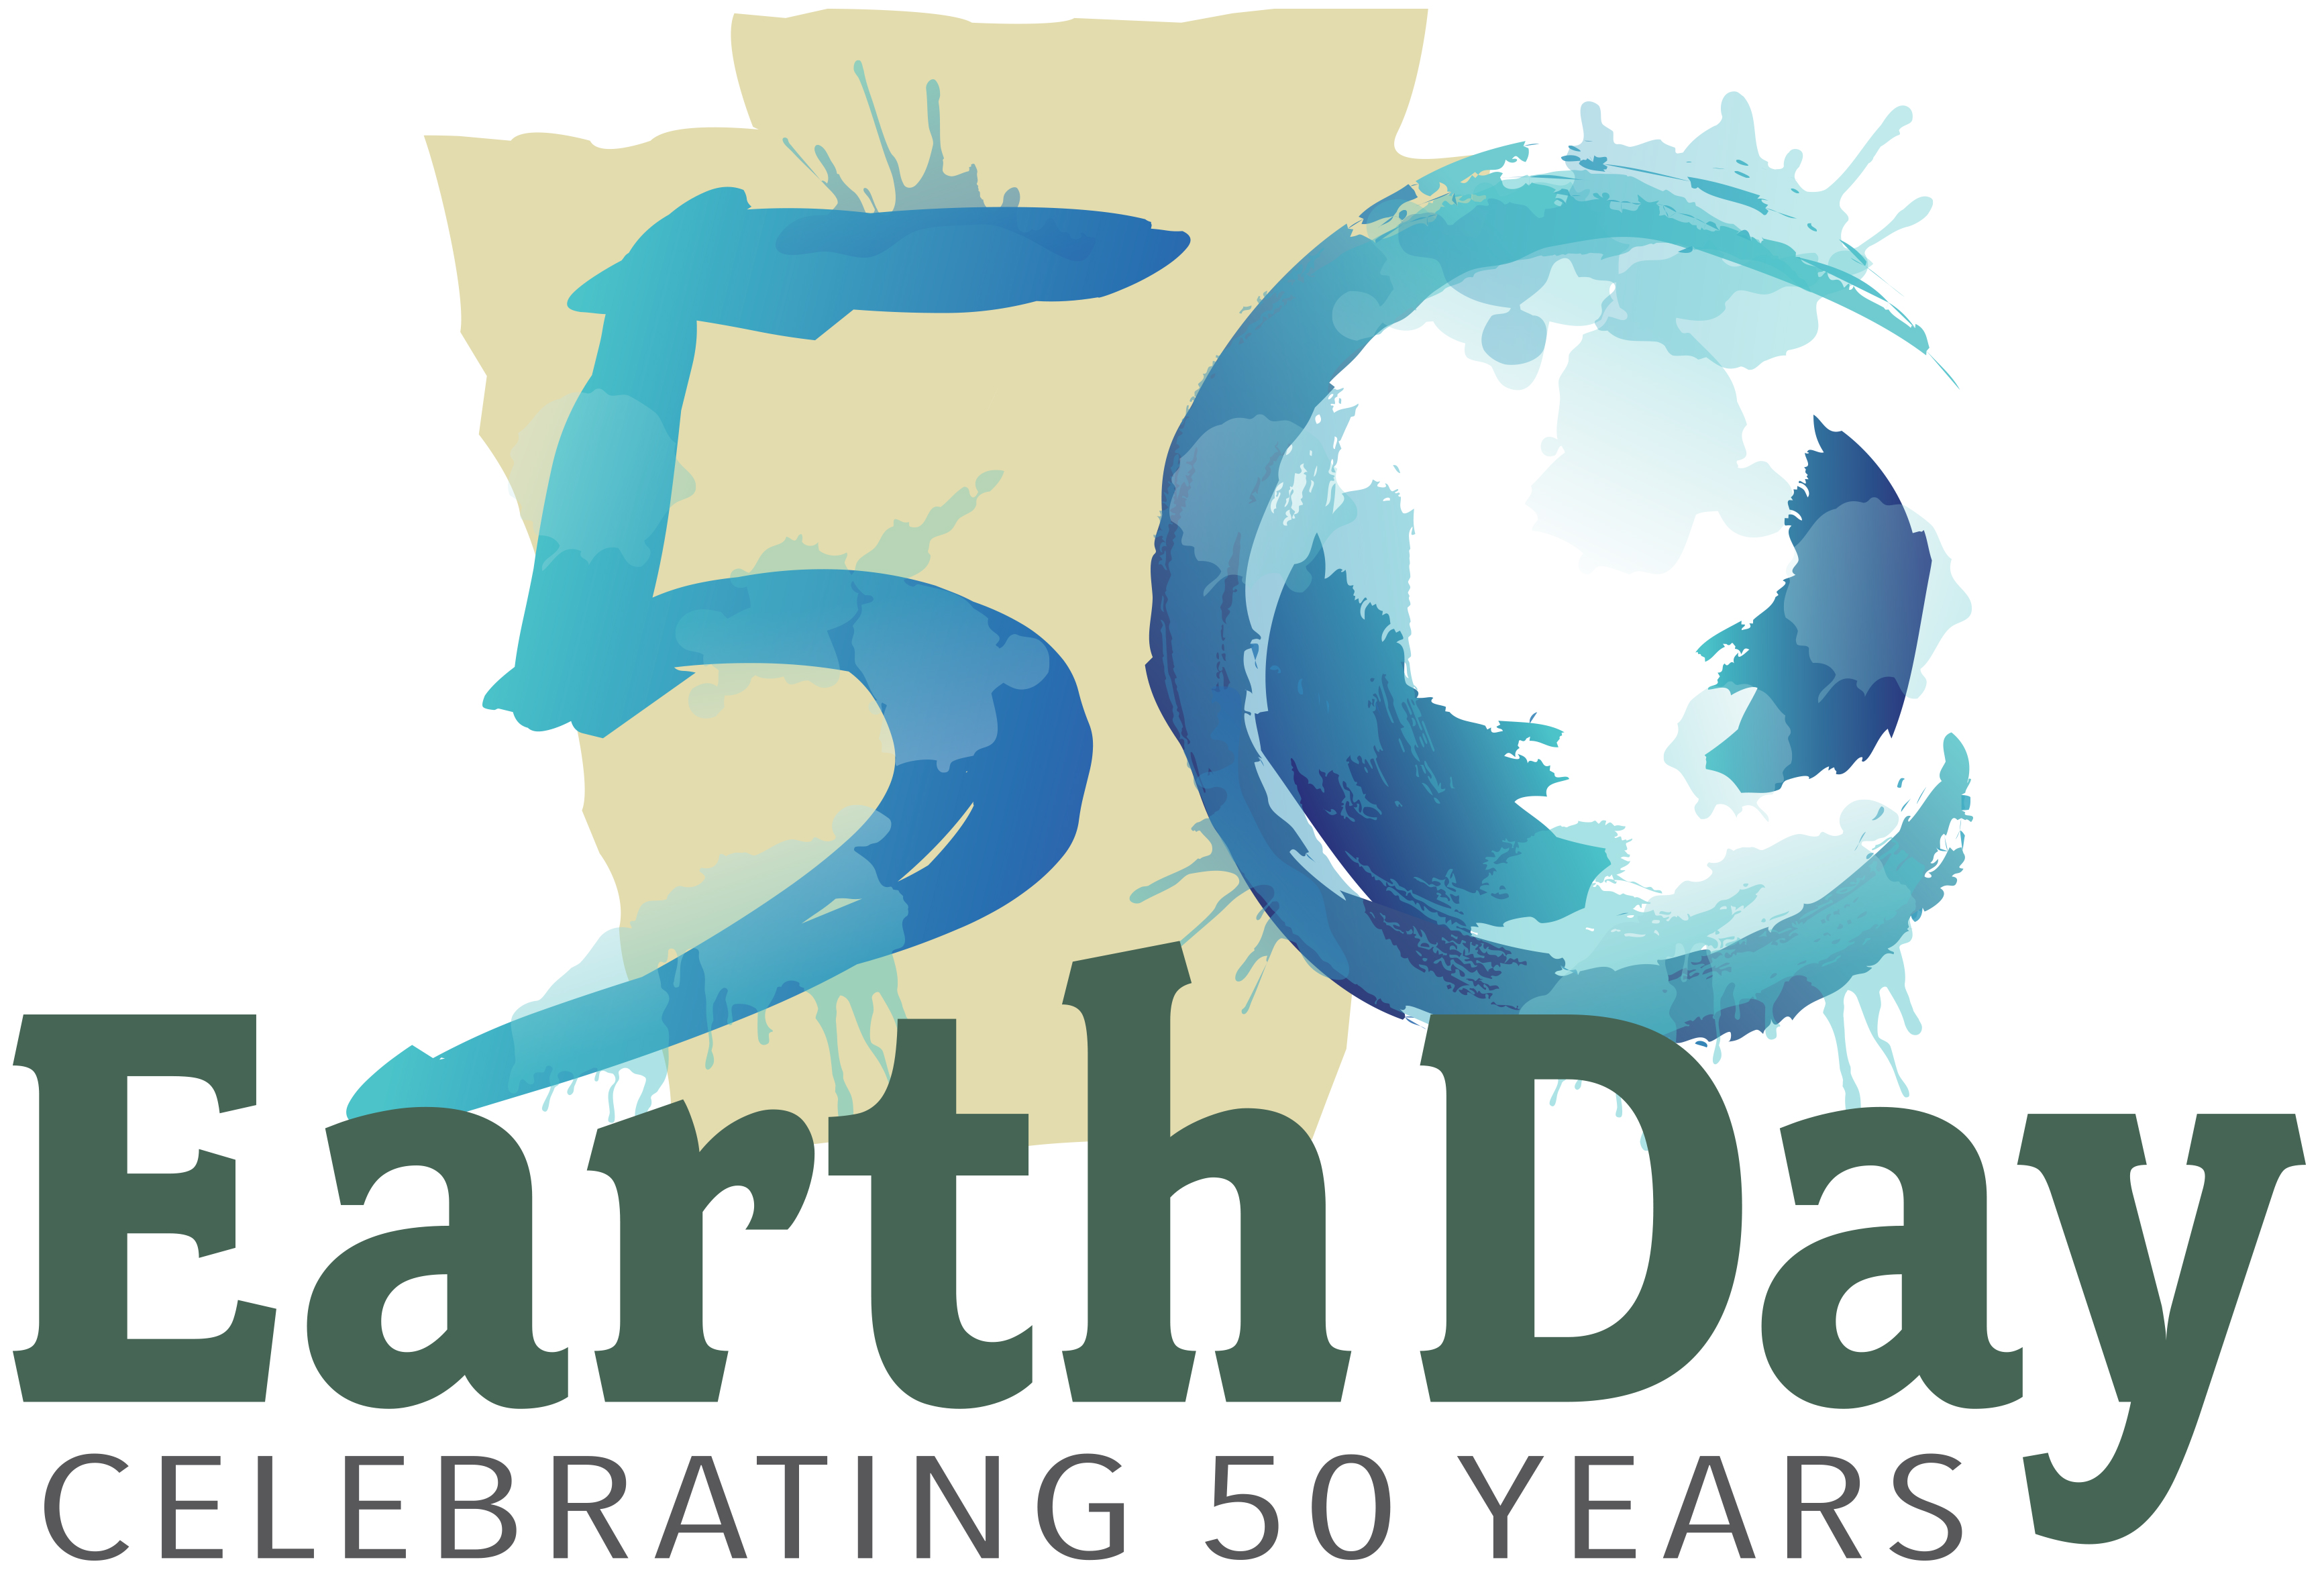 Earth Day 50th Anniversary!